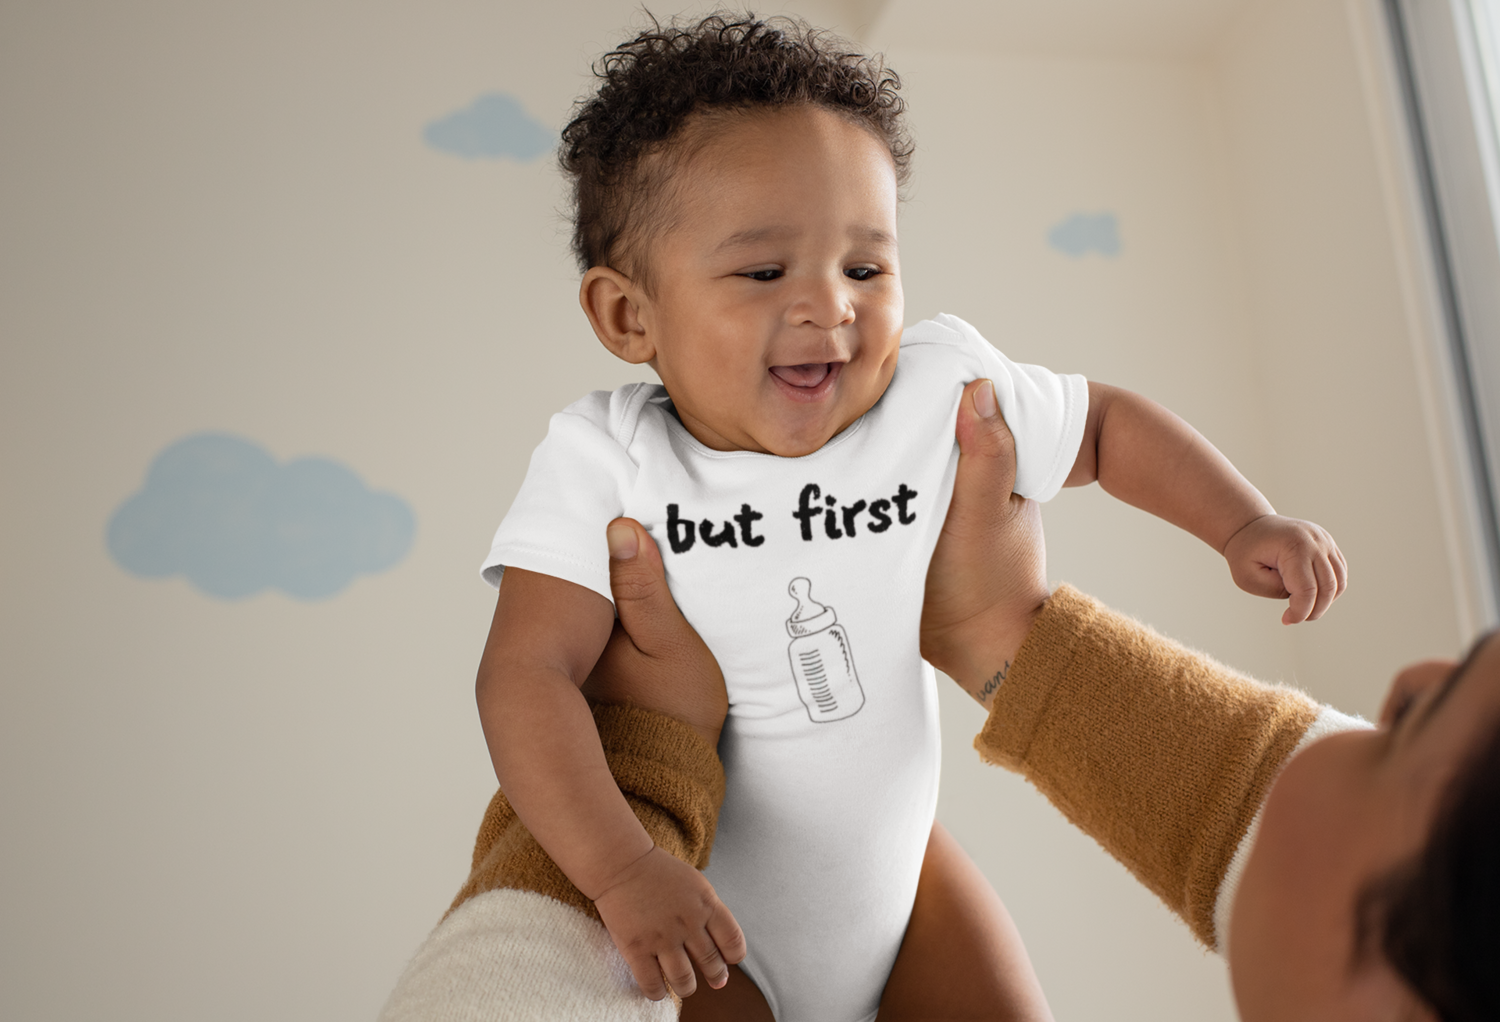 I CAN'T Without COFFEE-BUT FIRST Baba Short Sleeve Baby One Piece/Onesie